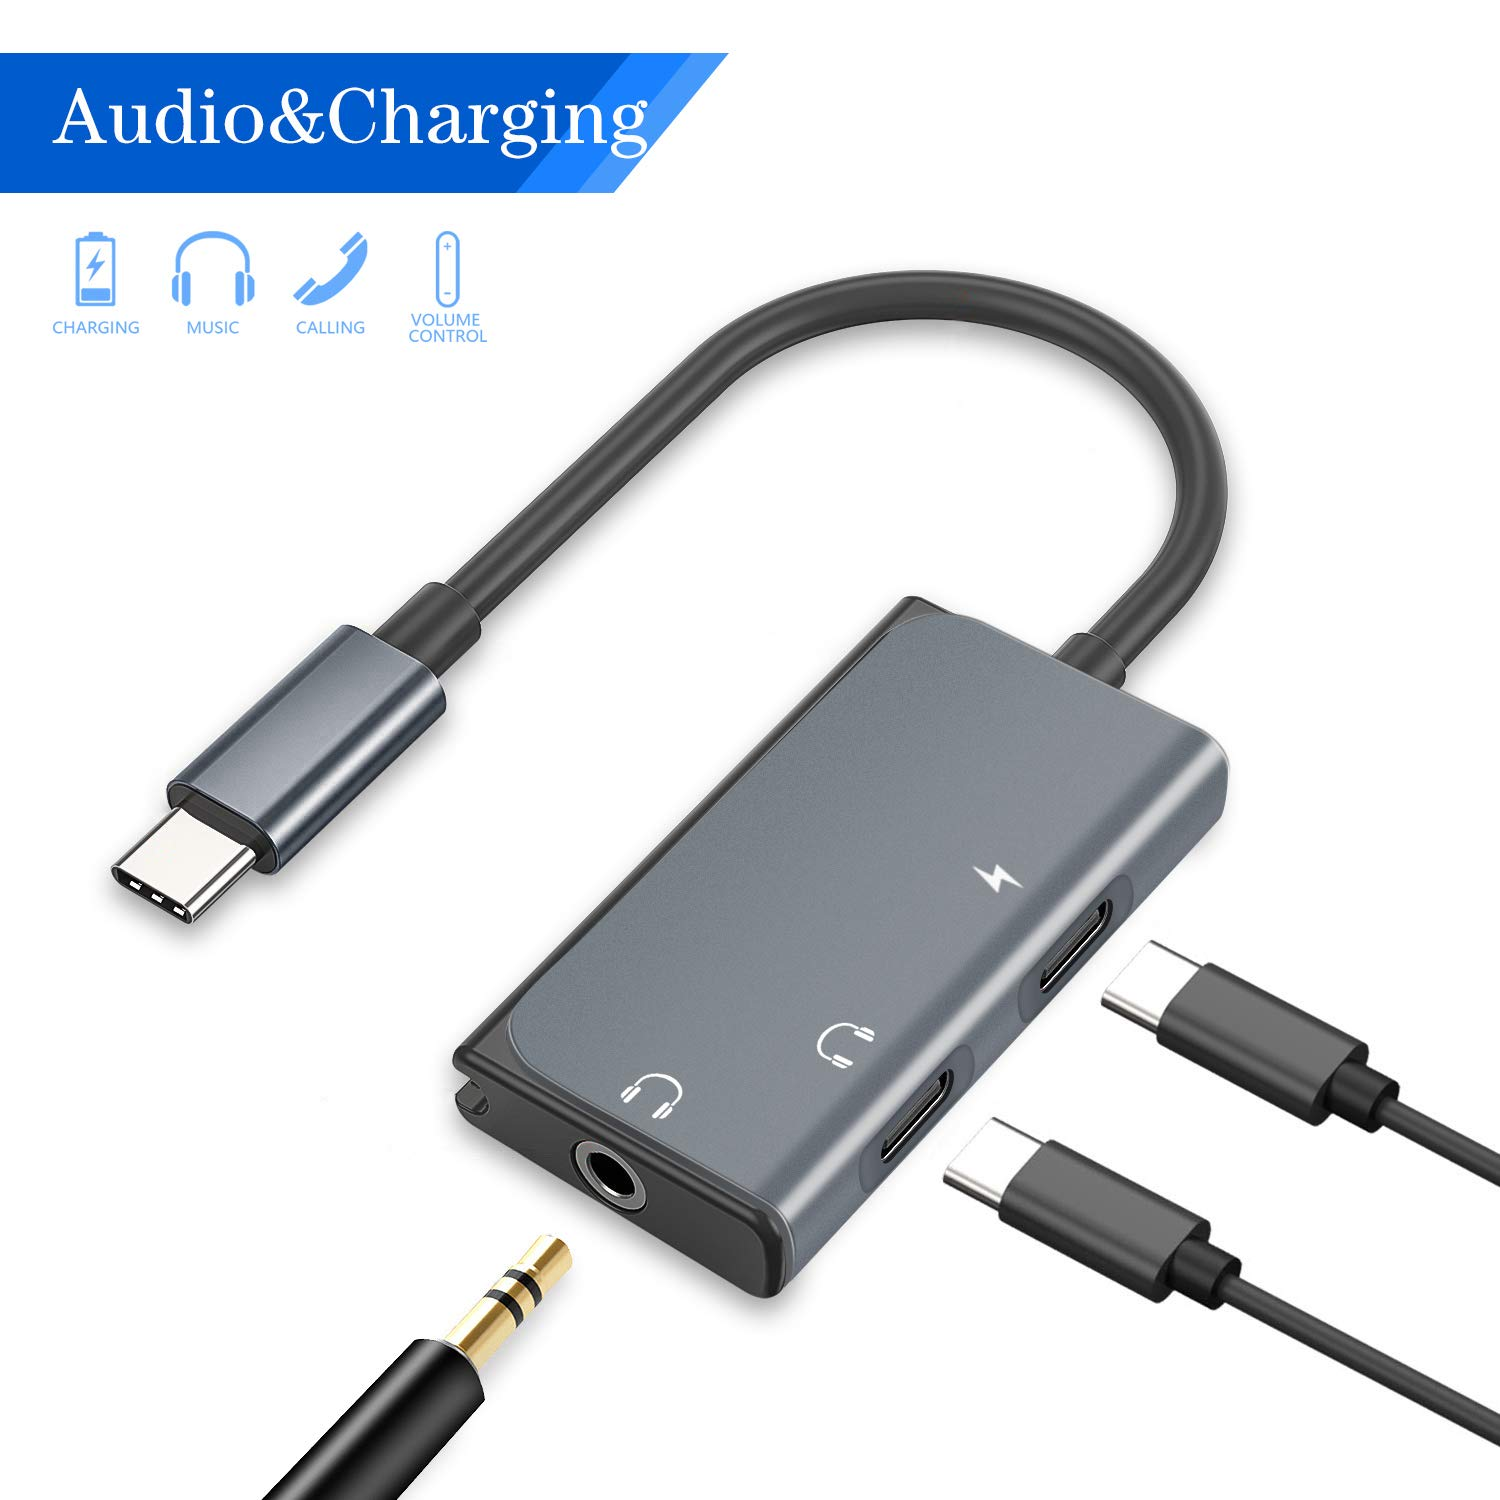 USB C to 3.5mm Audio Adapter, Mxcudu Upgraded 3 in 1 USB Type C Male to 3.5mm&USB C Headphone Jack Dongle and Charging Adapter Compatible with Google Pixel 4/4XL/3/3XL, Note 10/10+ and More (Grey)